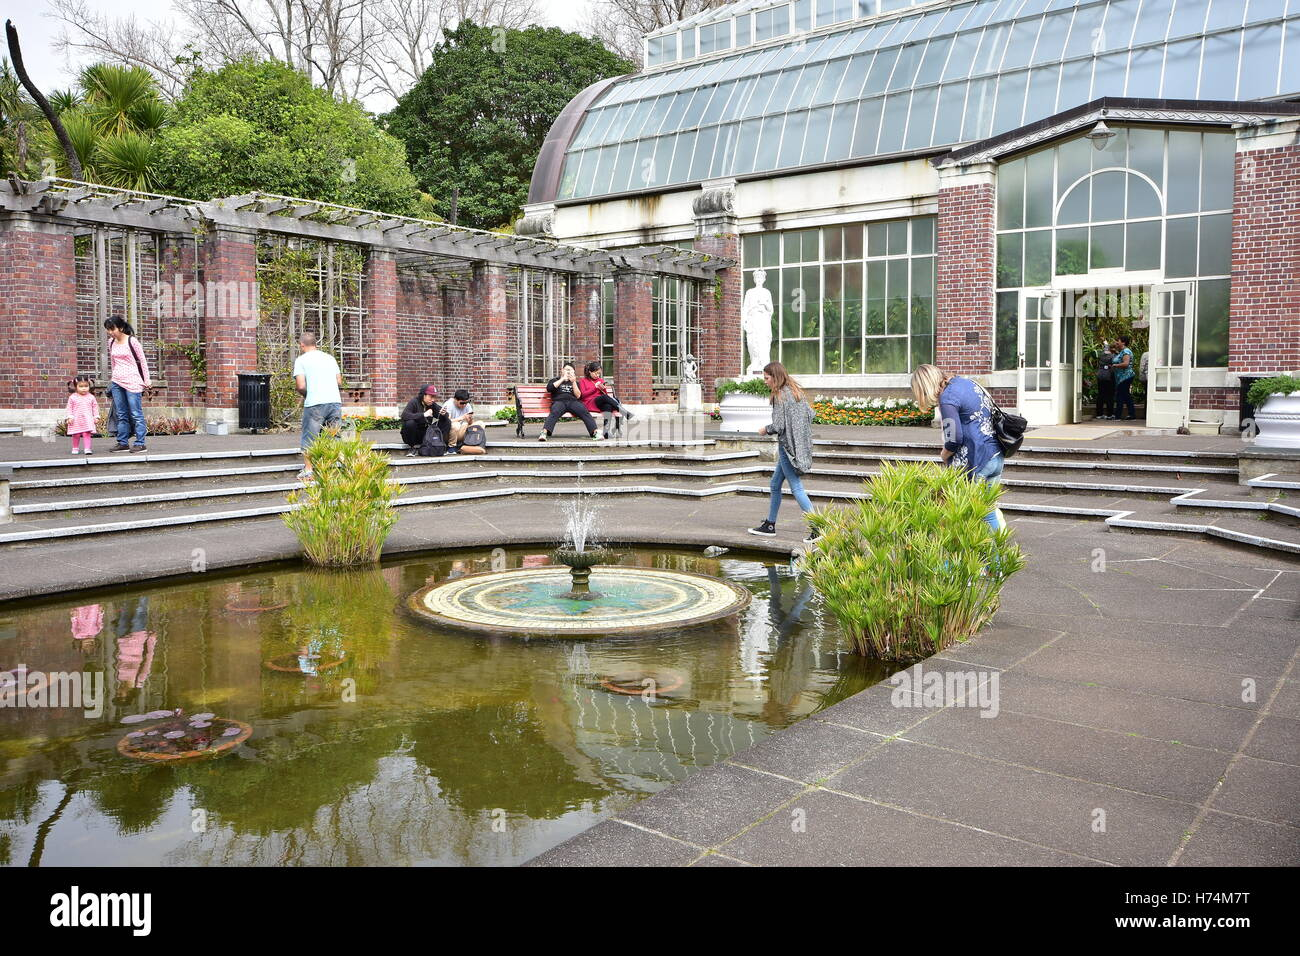 auckland domain wintergardens courtyard with fountains and a pond